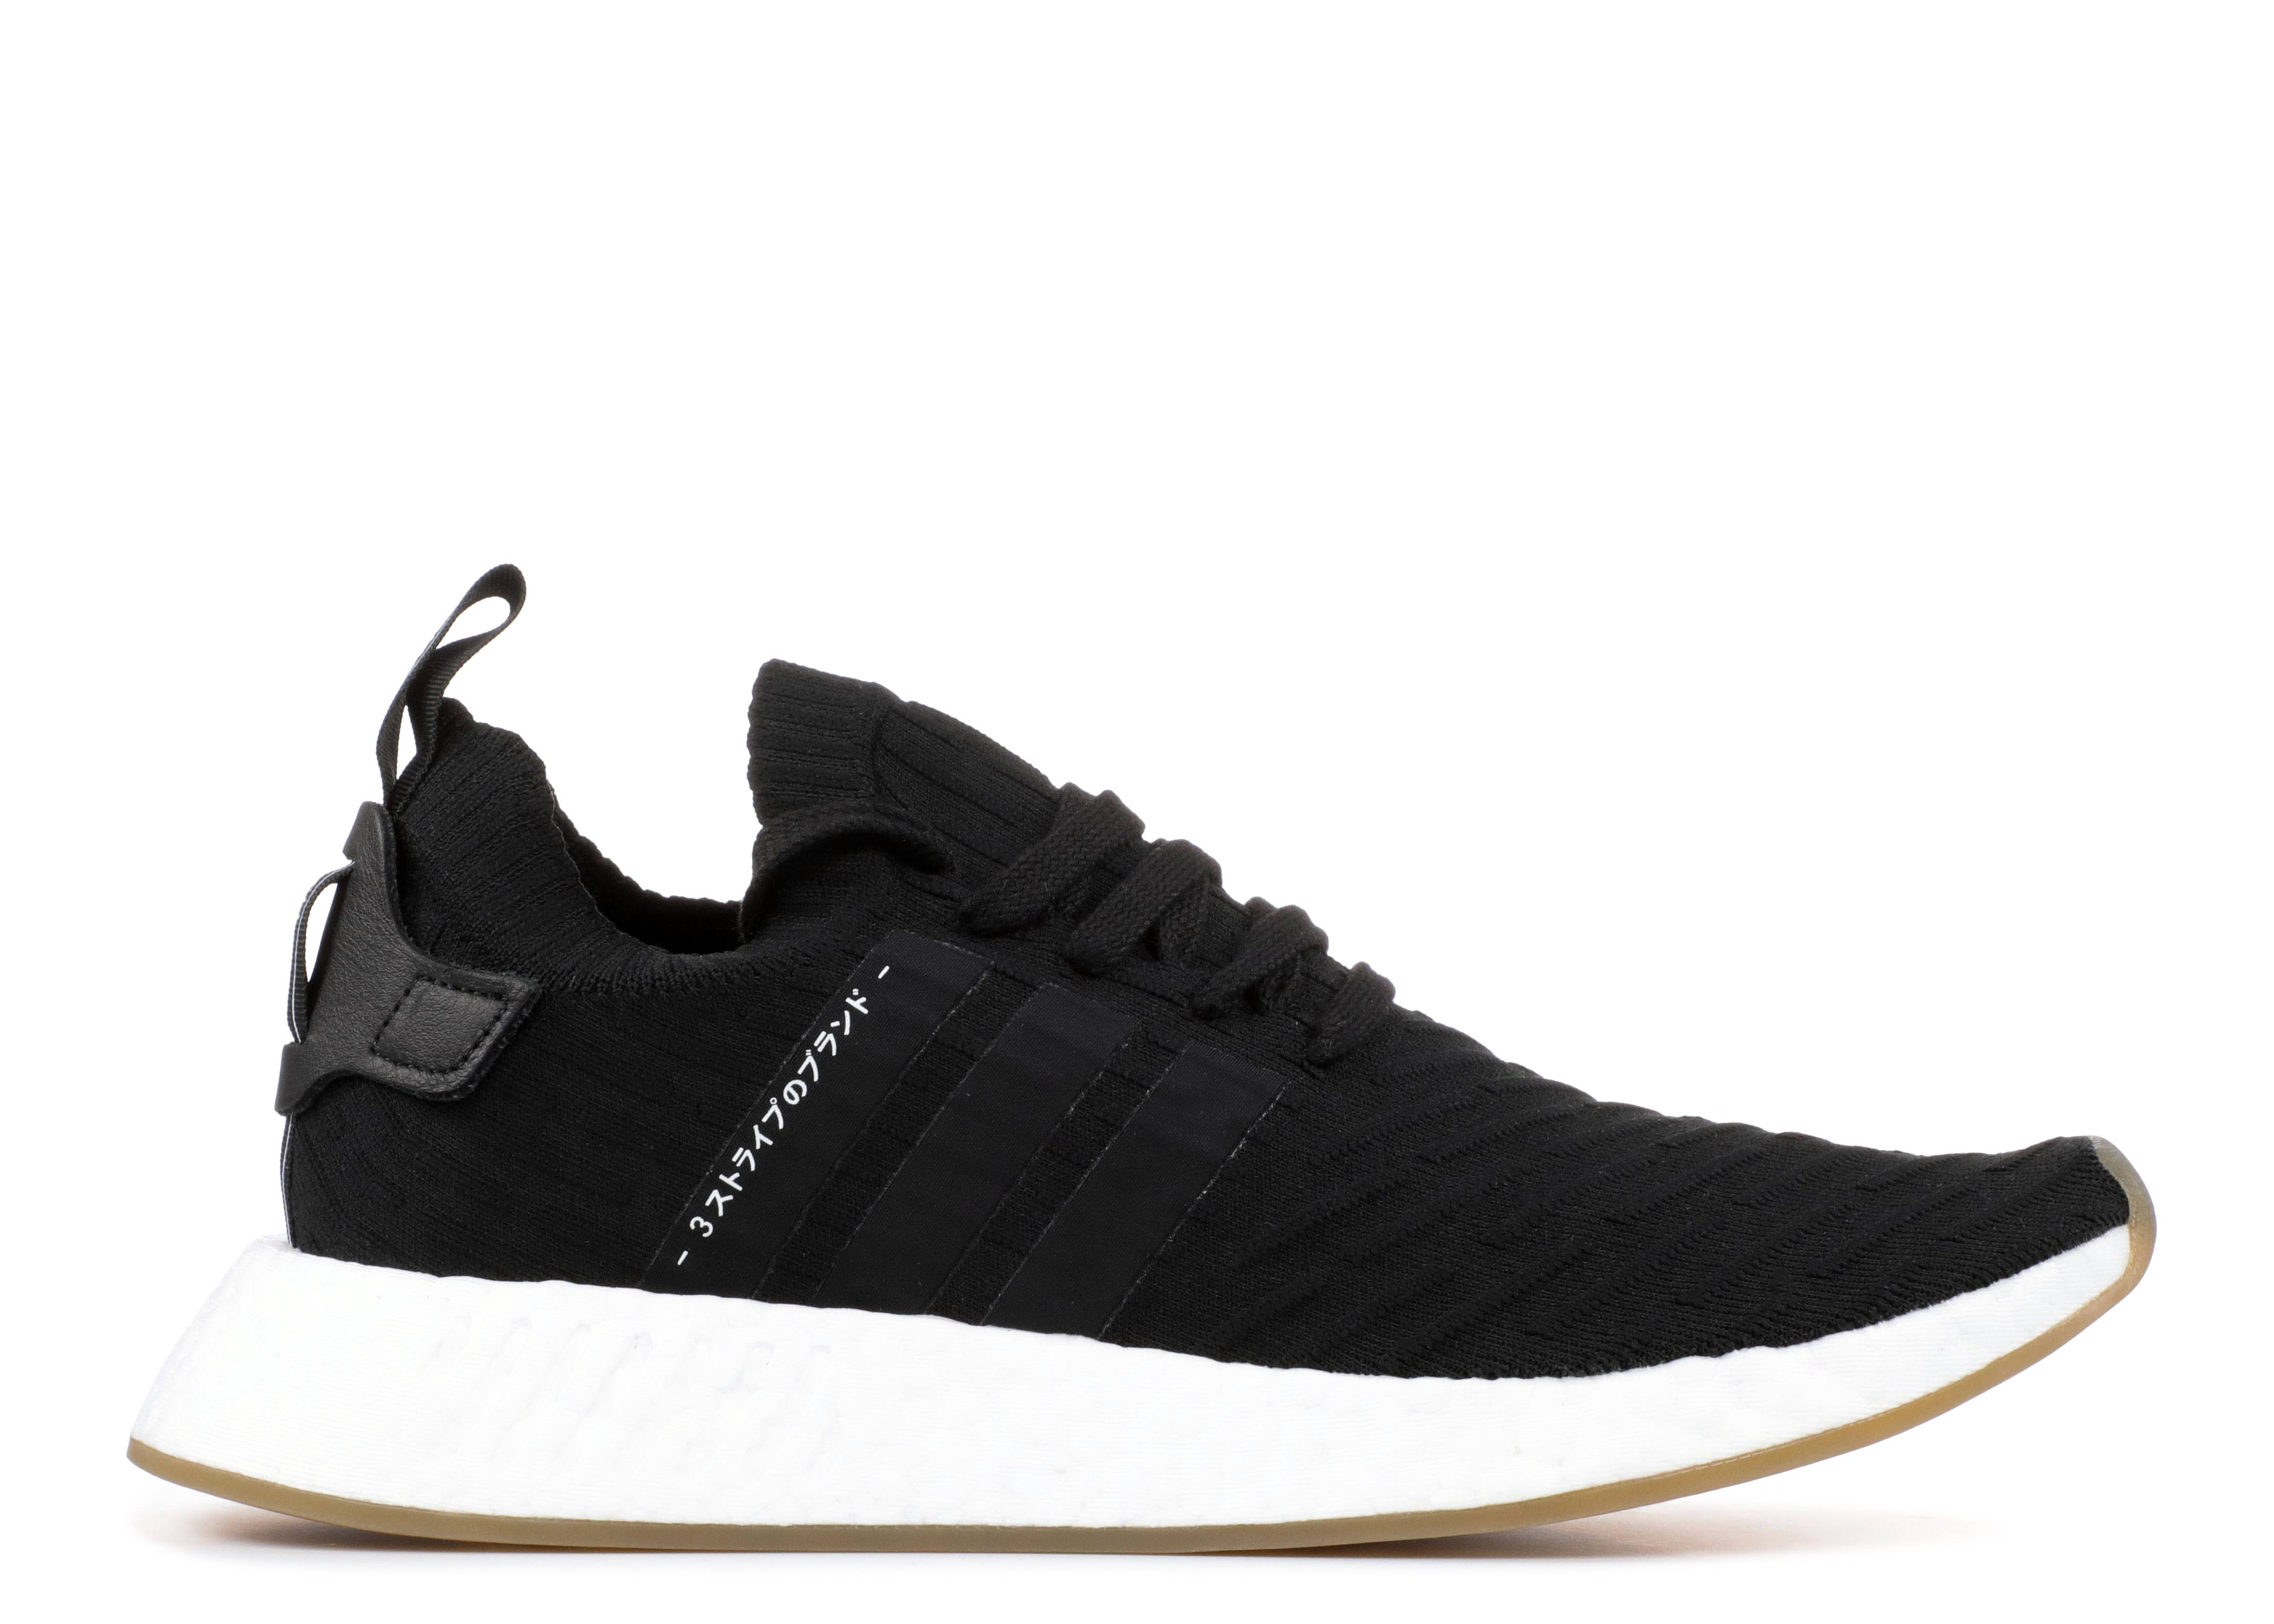 low priced 65a5c c8556 nmd r2 pk